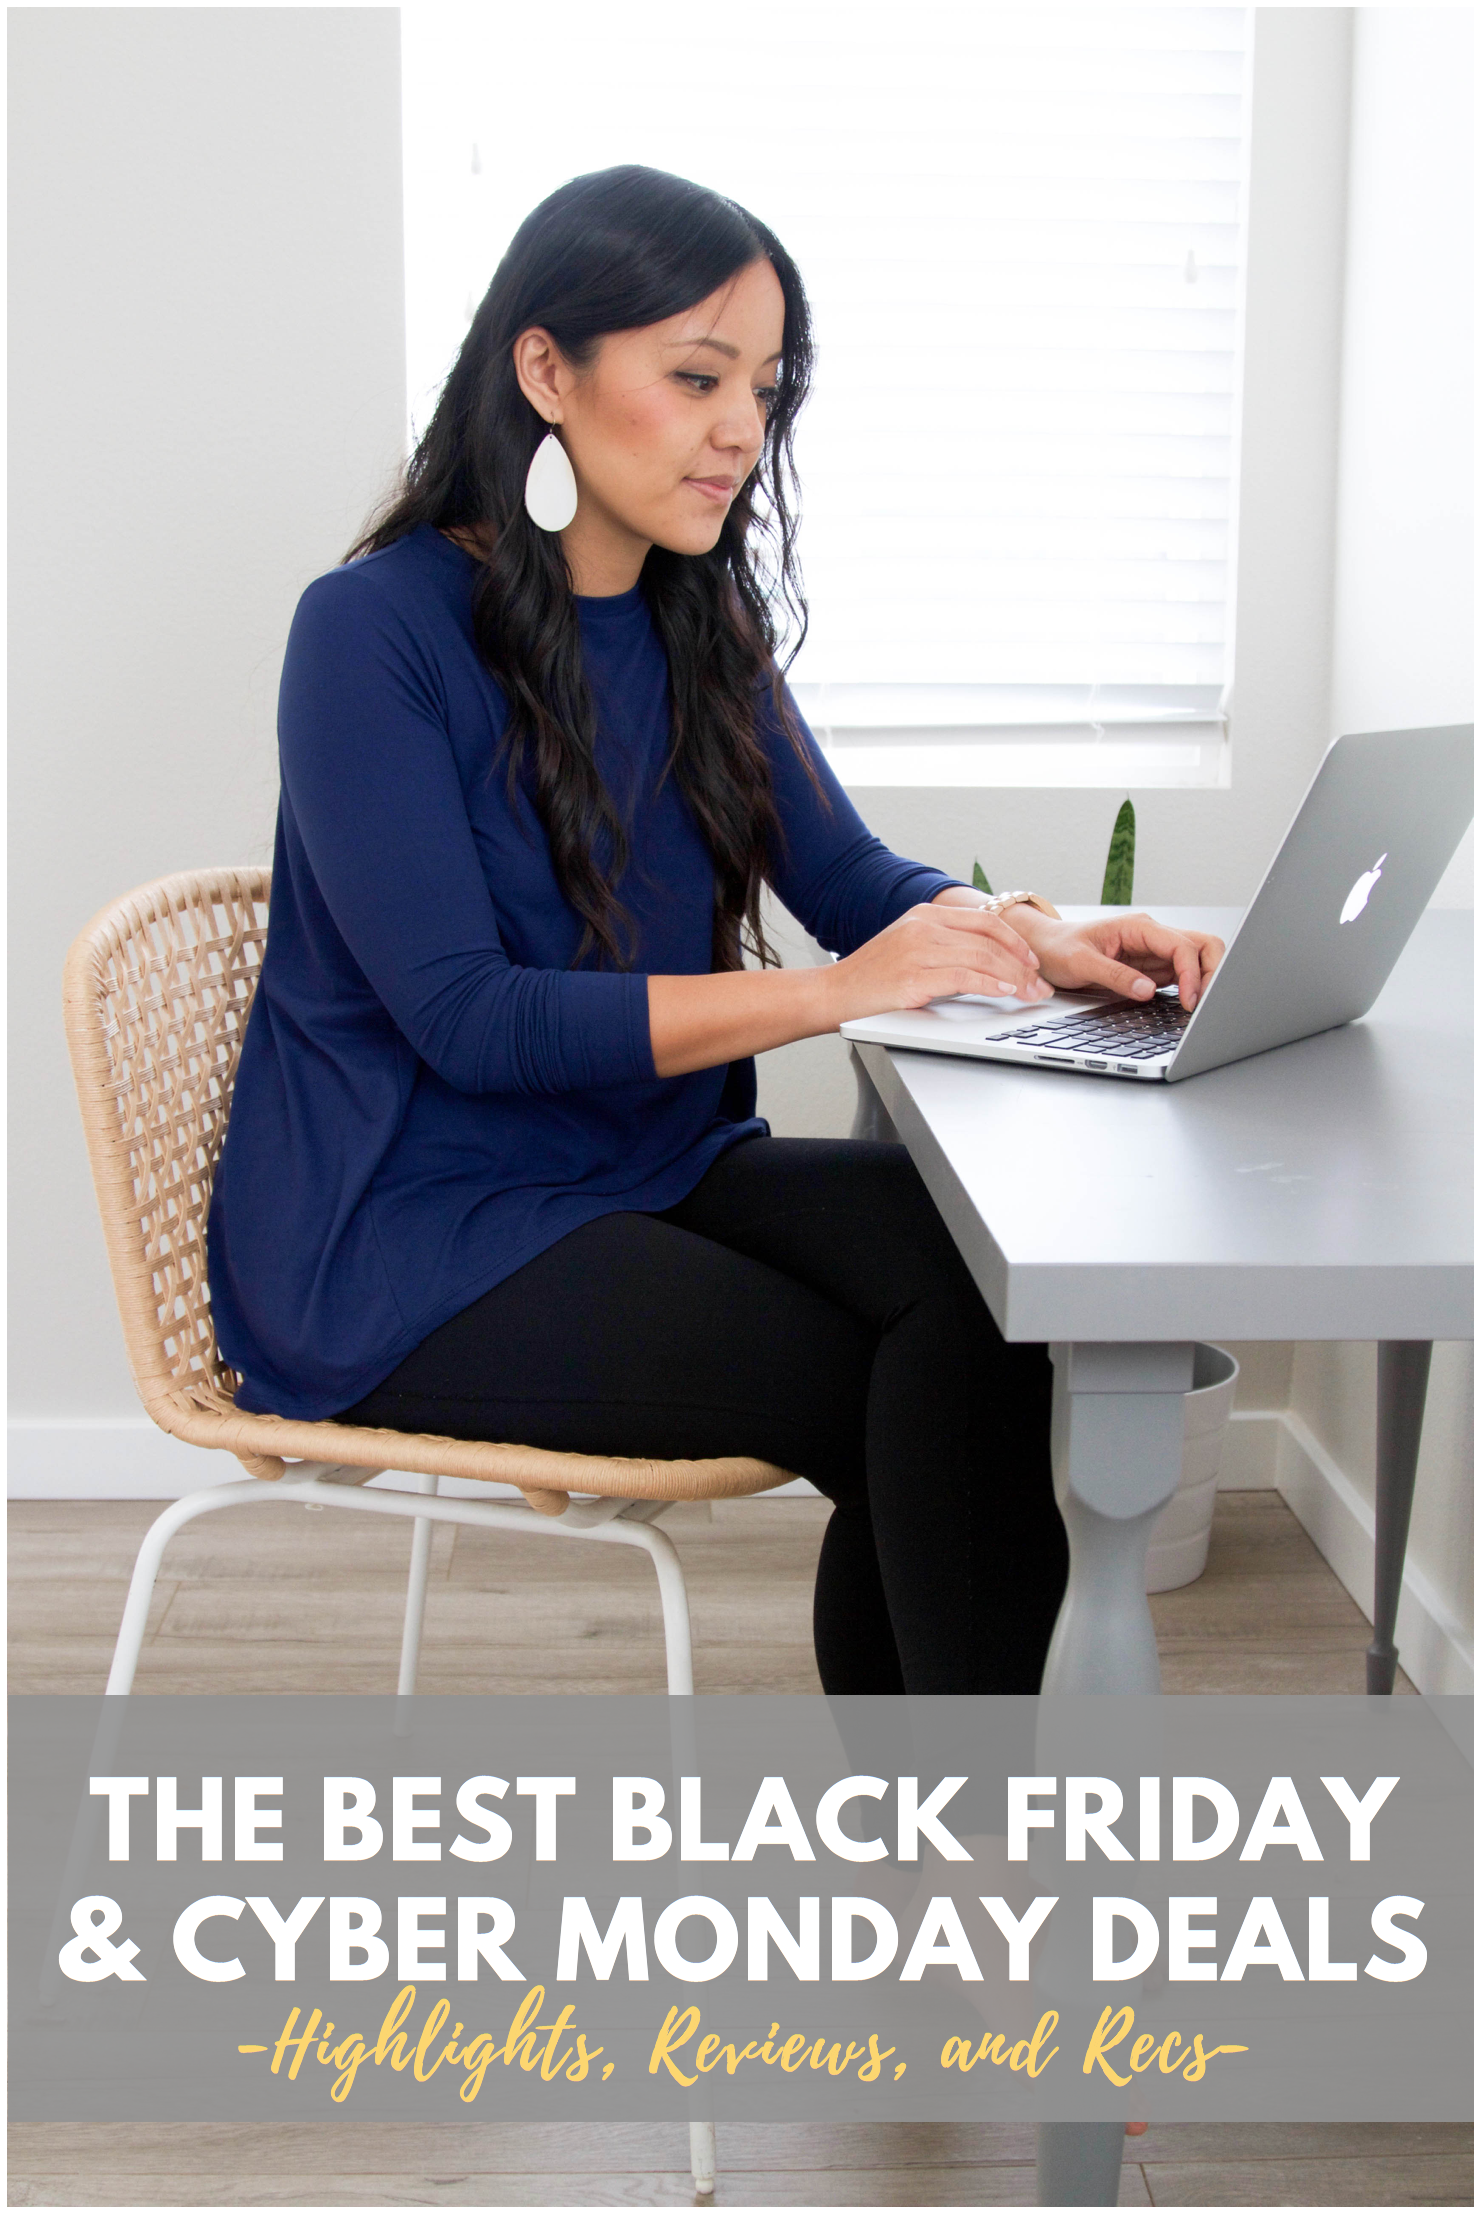 Best Black Friday and Cyber Monday Items to Buy